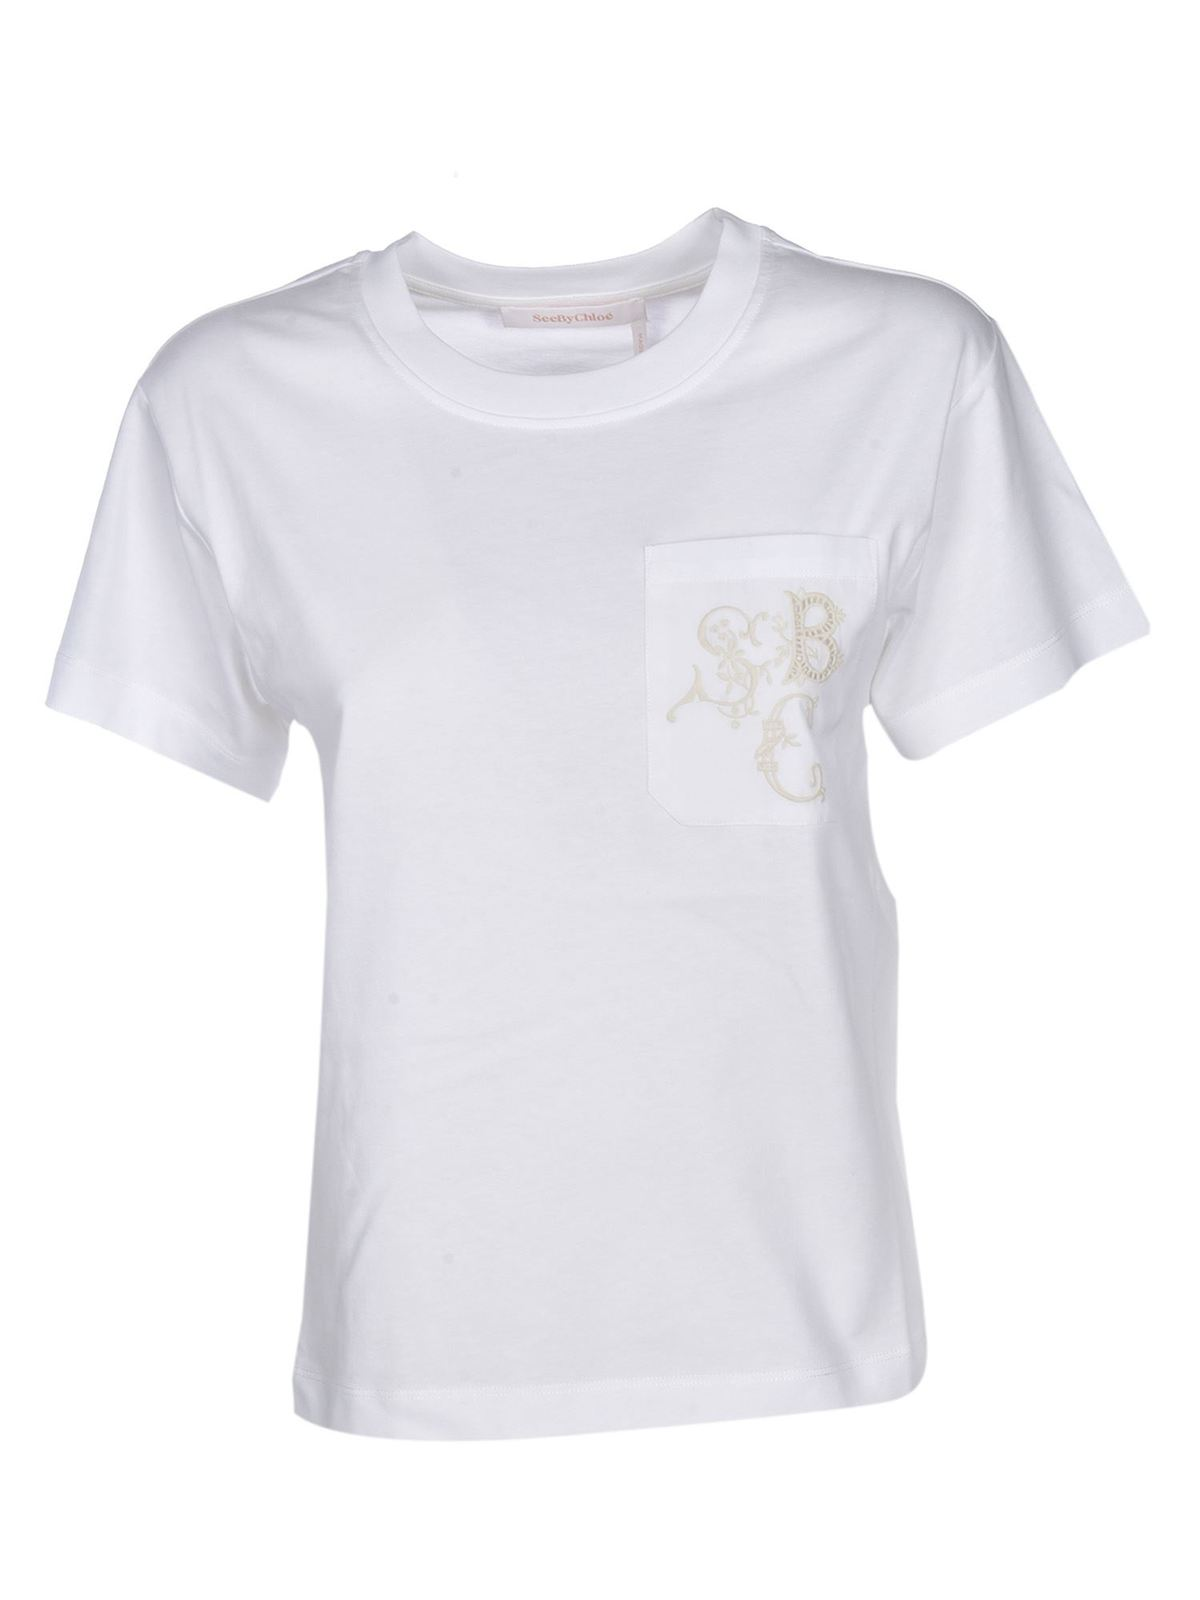 See By Chloé Cottons EMBROIDERED LOGO POCKET T-SHIRT IN WHITE